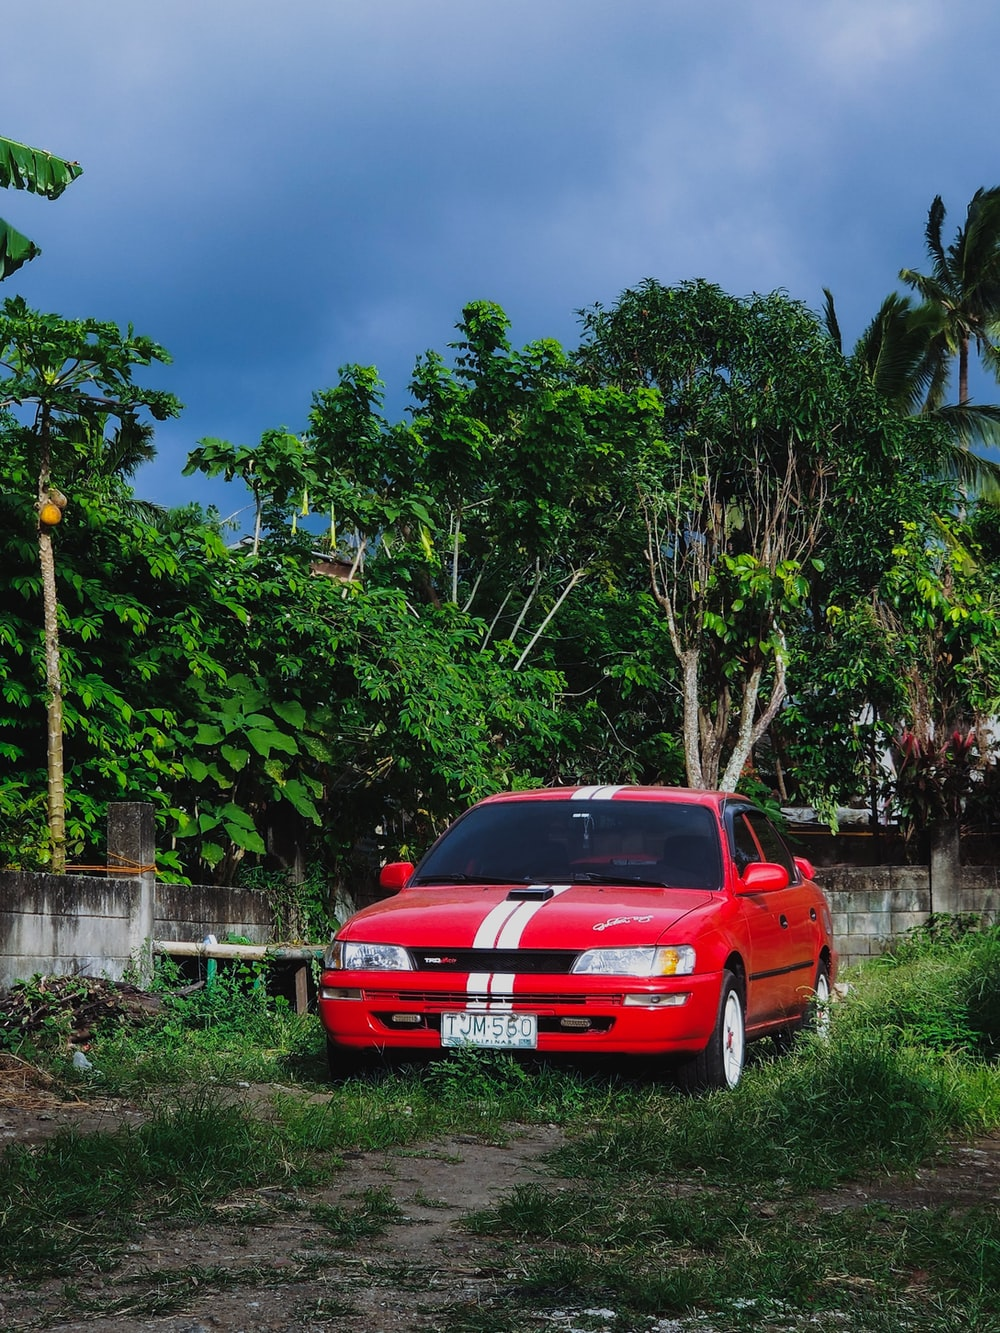 red car parked near green trees during daytime